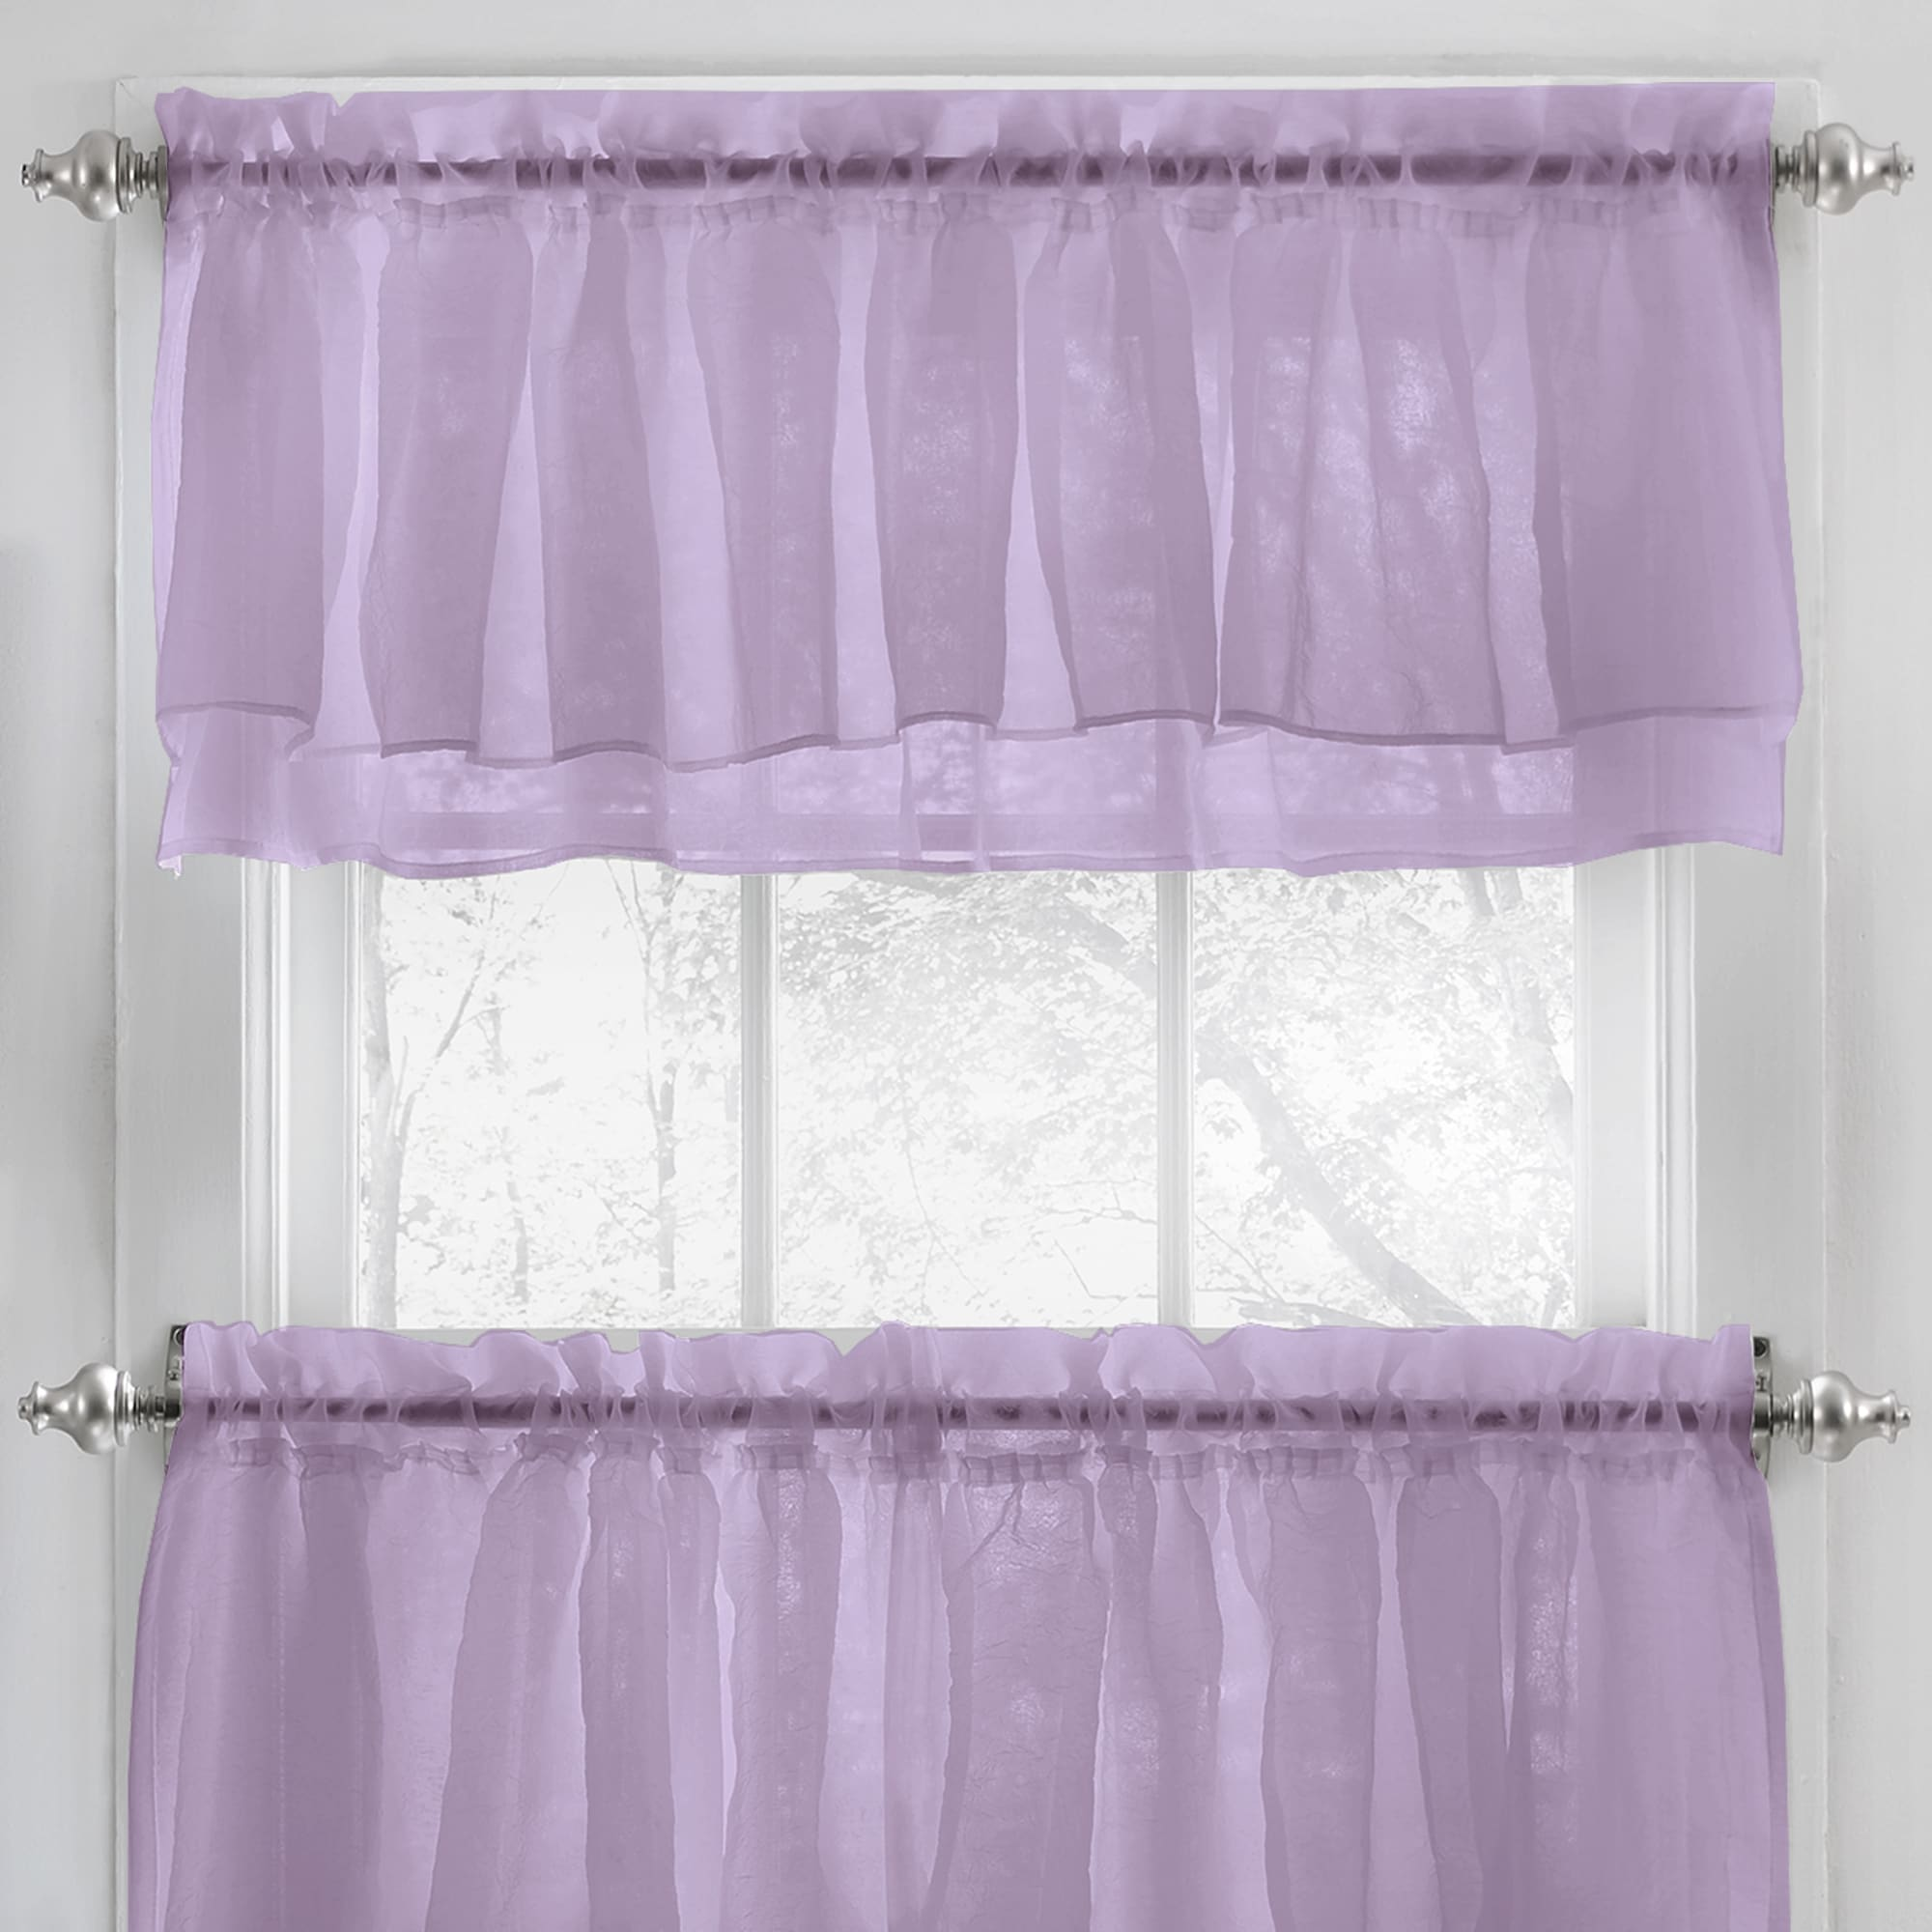 wonderful Pink And Purple Curtain Part - 13: Shop Elegant Crushed Voile Ruffle Blue-White-Pink-Purple-Beige Window  Curtain Pieces With Optional Valance and Tiers - On Sale - Free Shipping On  Orders ...